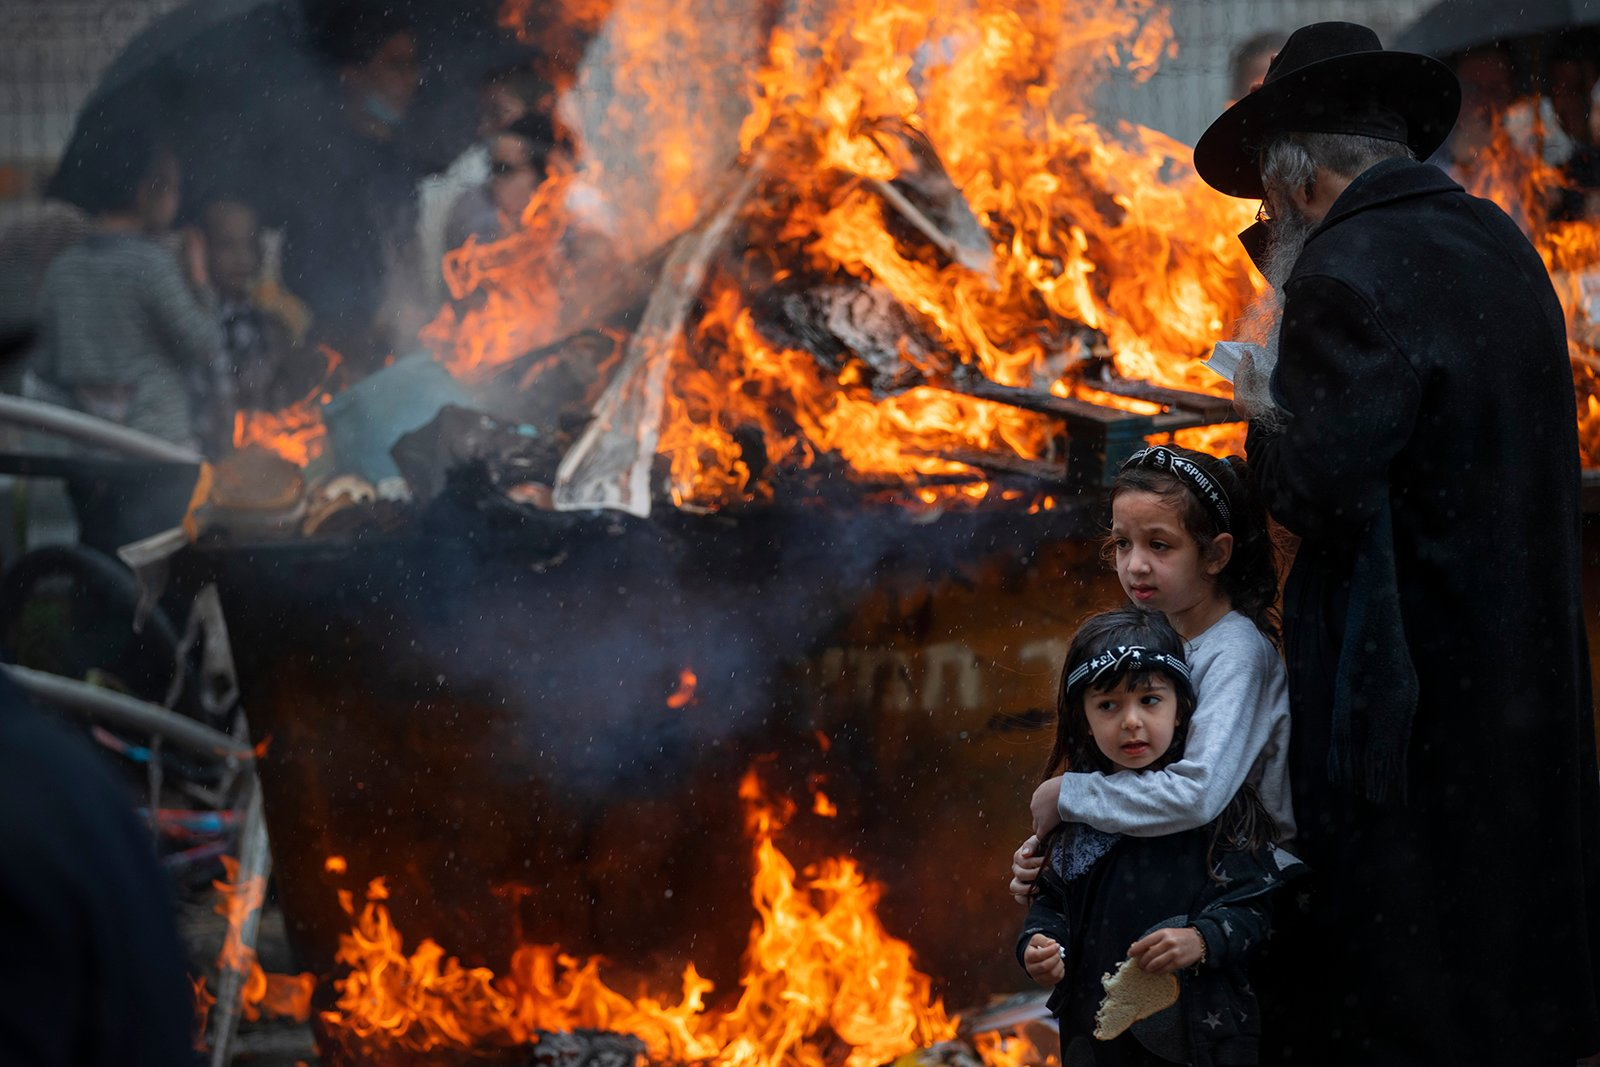 Ultra-Orthodox Jewish men and children burn leavened items in final preparation for the Passover holiday in the ultra-Orthodox Jewish town of Bnei Brak, near Tel Aviv, Israel, Friday, March 26, 2021. Jews are forbidden to eat leavened foodstuffs during the Passover holiday that celebrates the biblical story of the Israelites' escape from slavery and exodus from Egypt. (AP Photo/Oded Balilty)